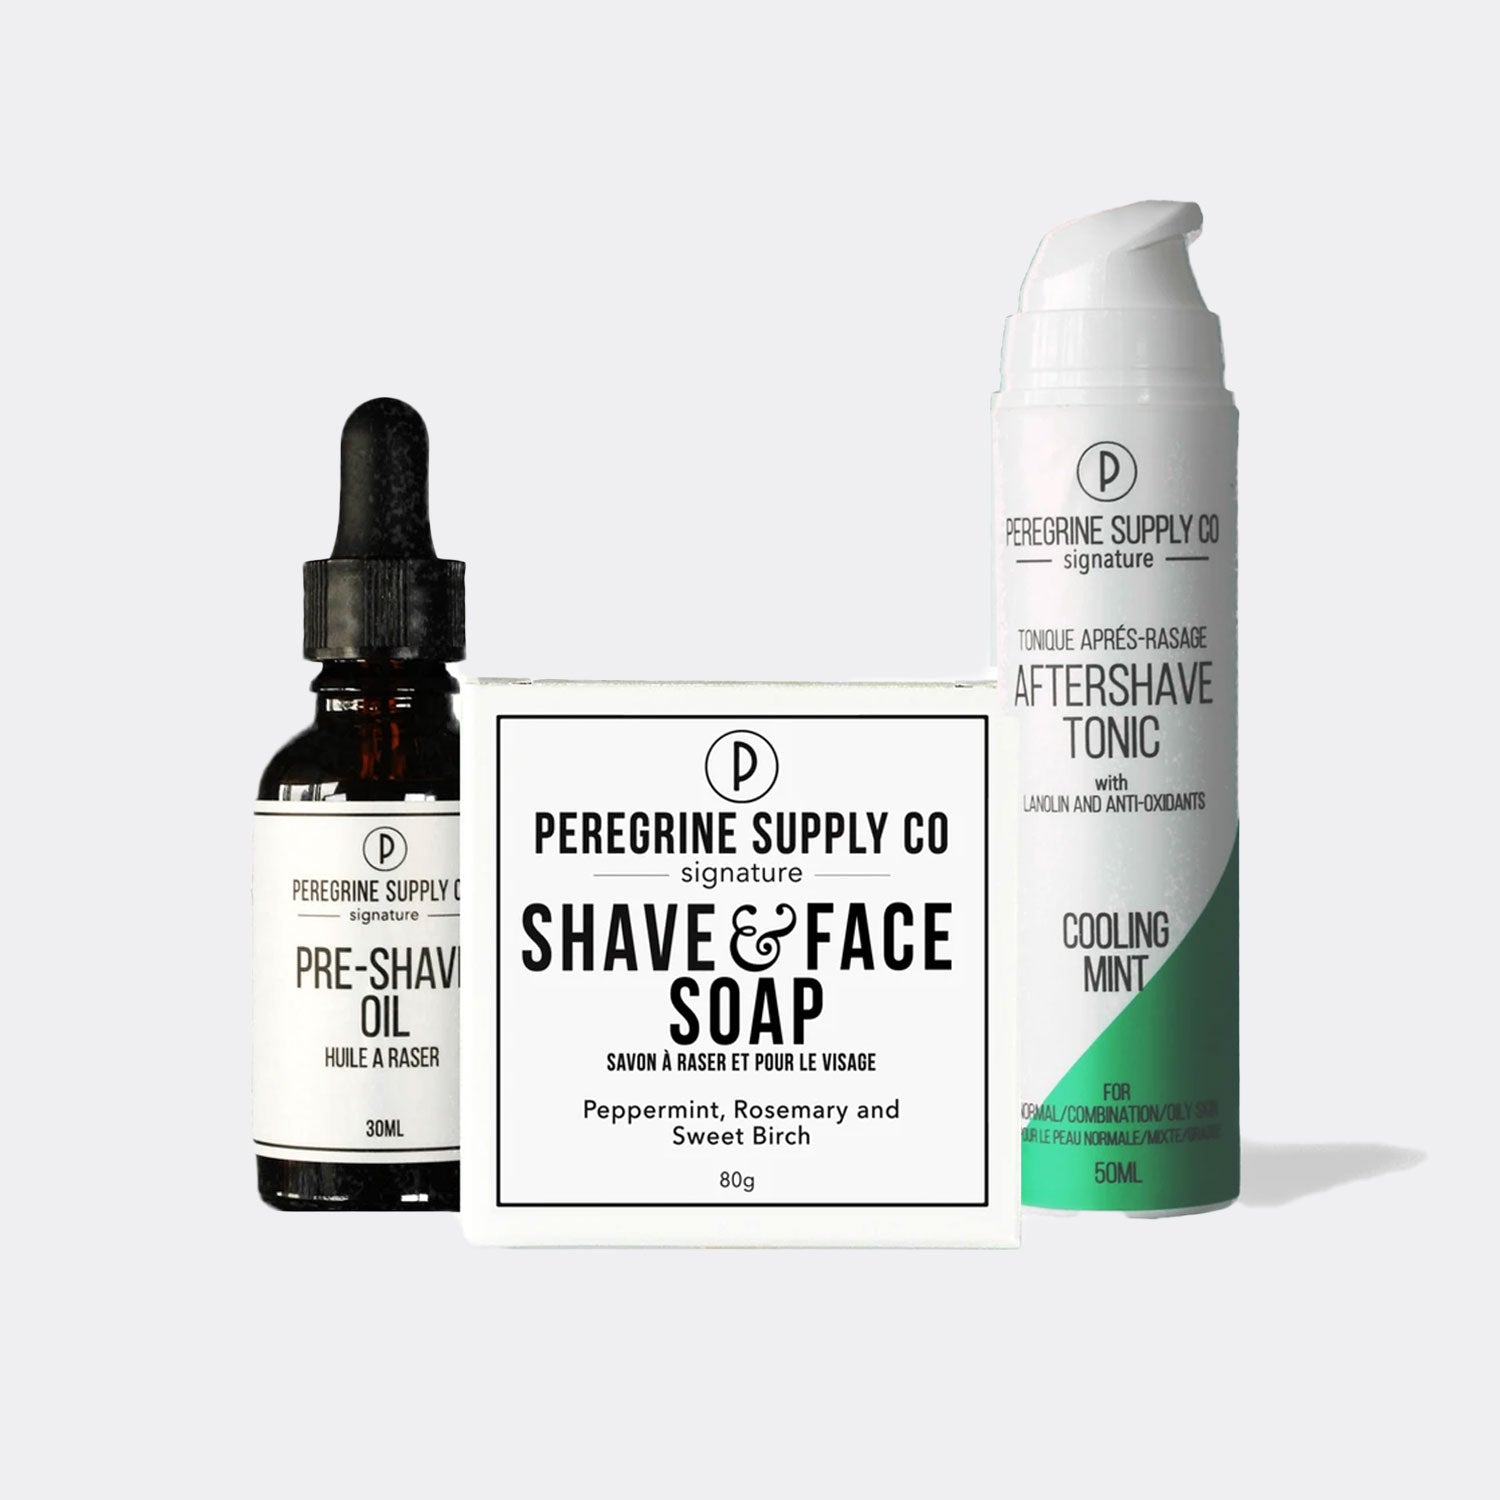 Peregrine Supply Co. Shave Box Care Set - Cooling Mint